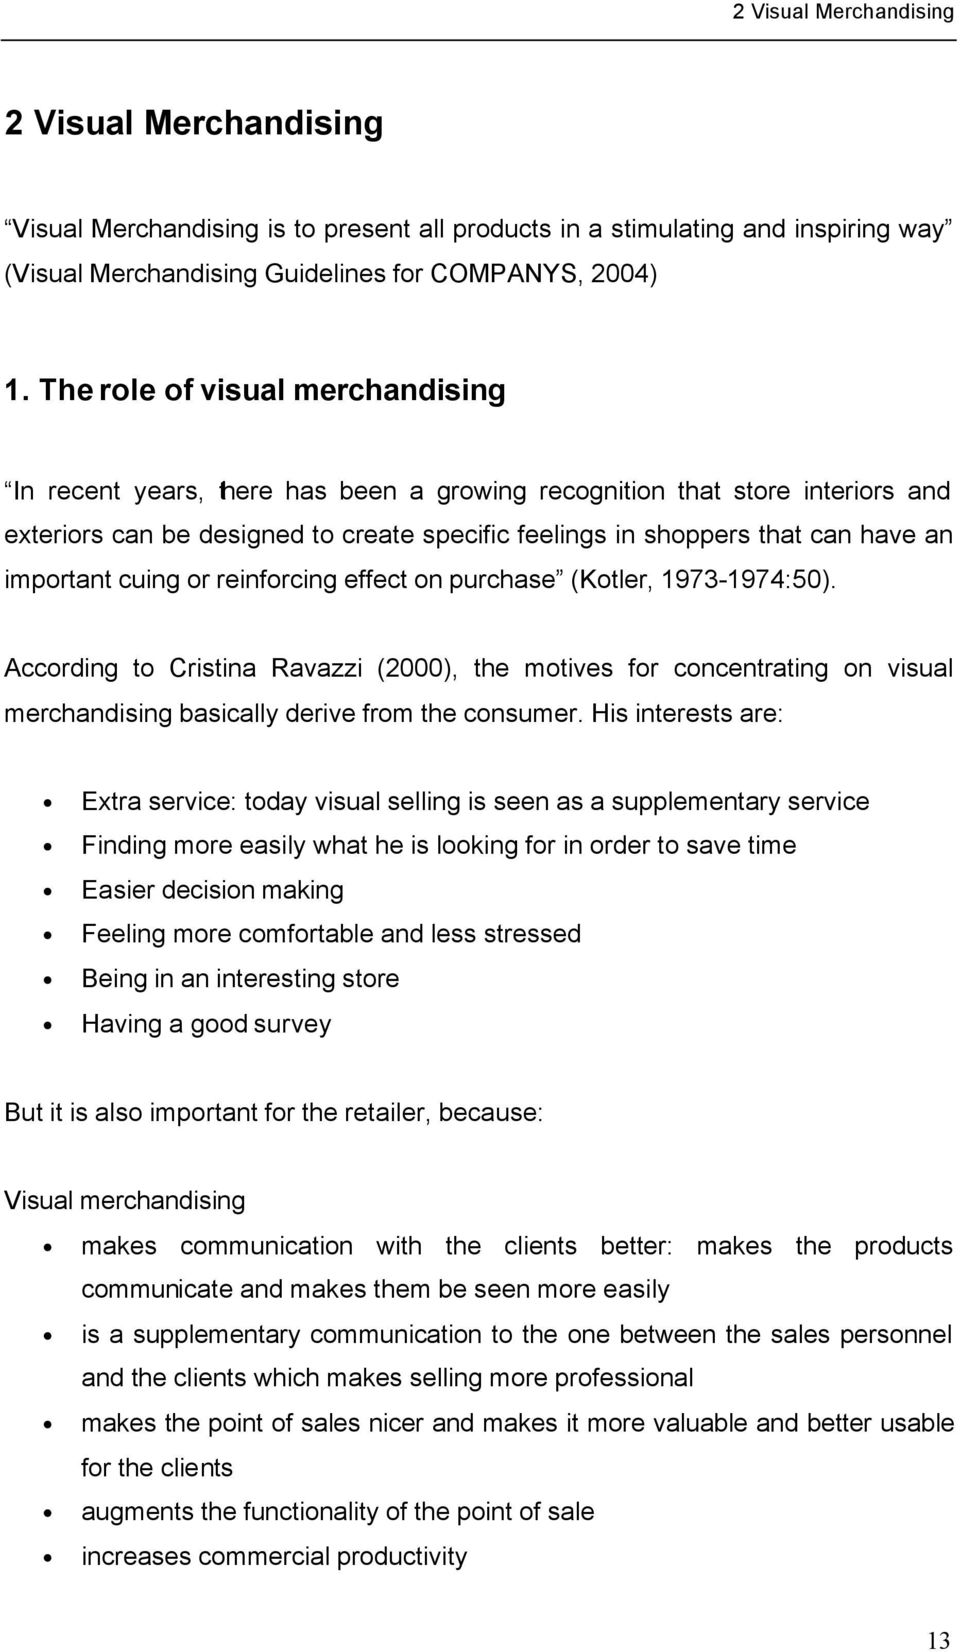 visual merchandising in retail questionnaire